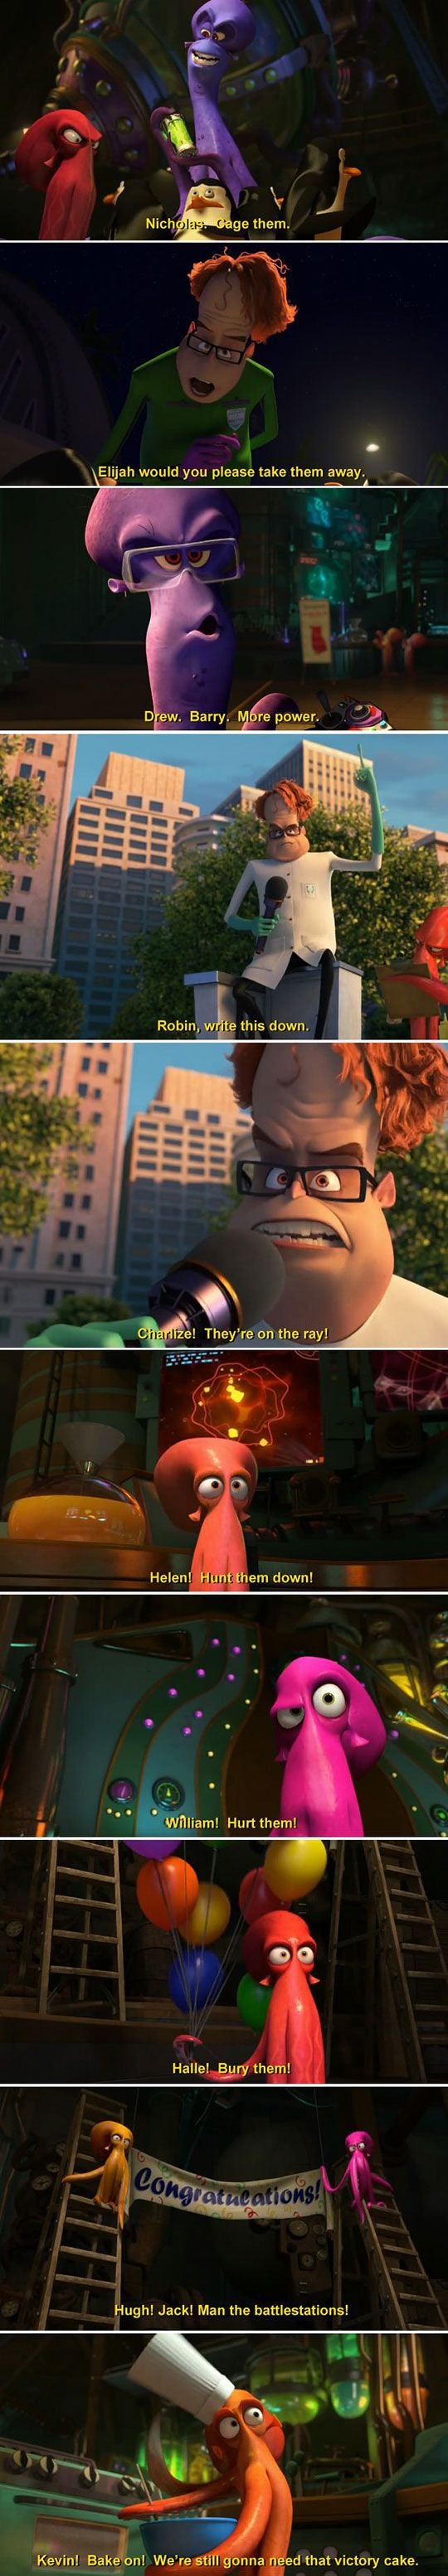 Funny Gag In 'Penguins Of Madagascar' | it took me a few seconds to recognize what was actually being said lol